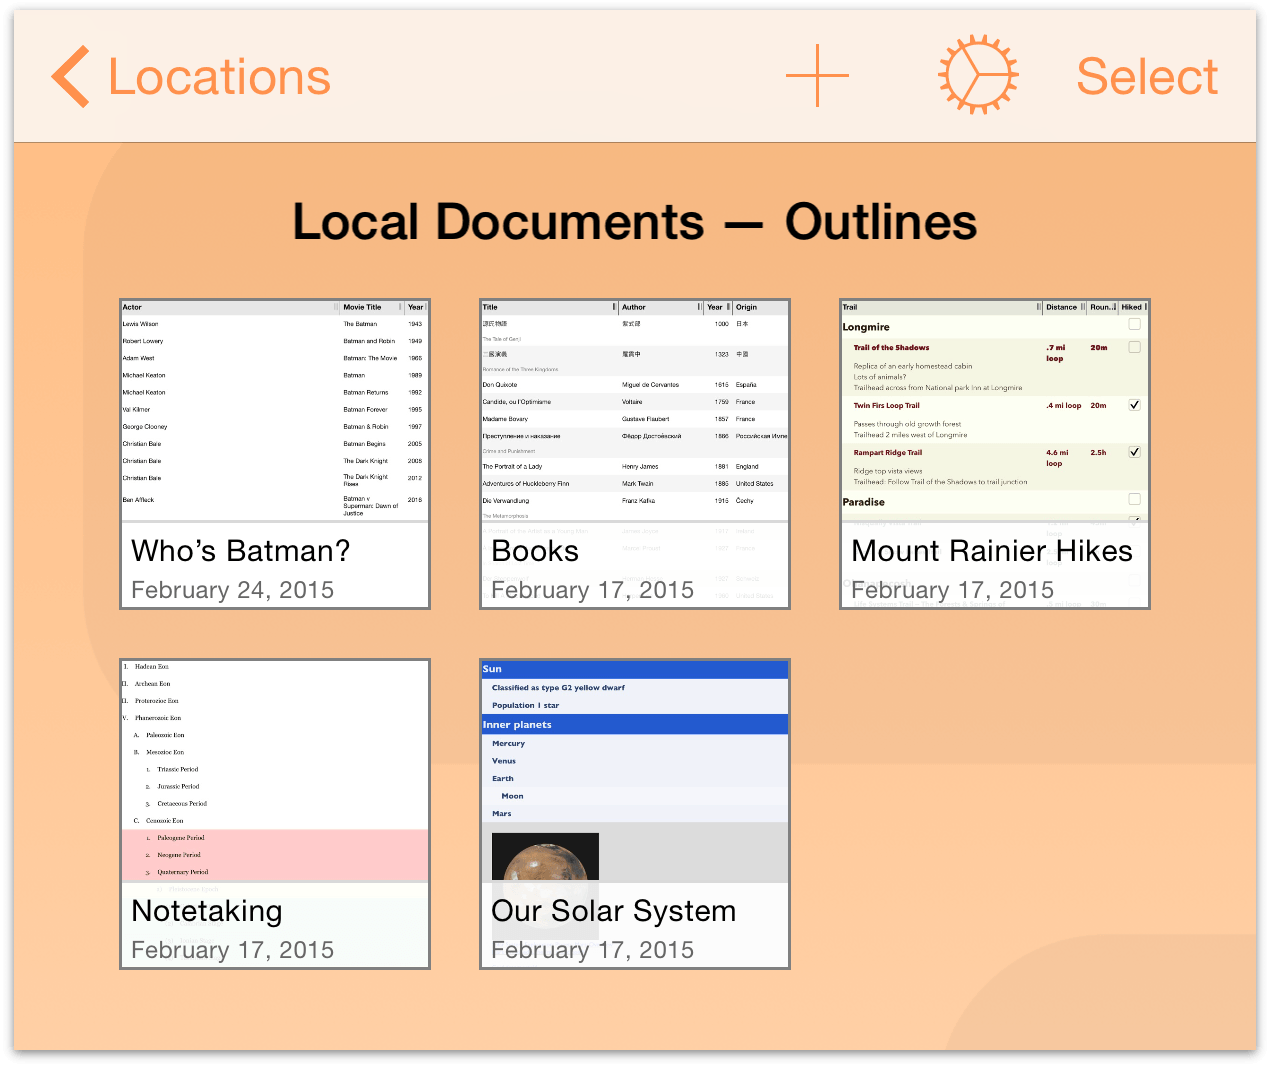 OmniOutliner 2 9 3 for iOS User Manual - Managing Files with